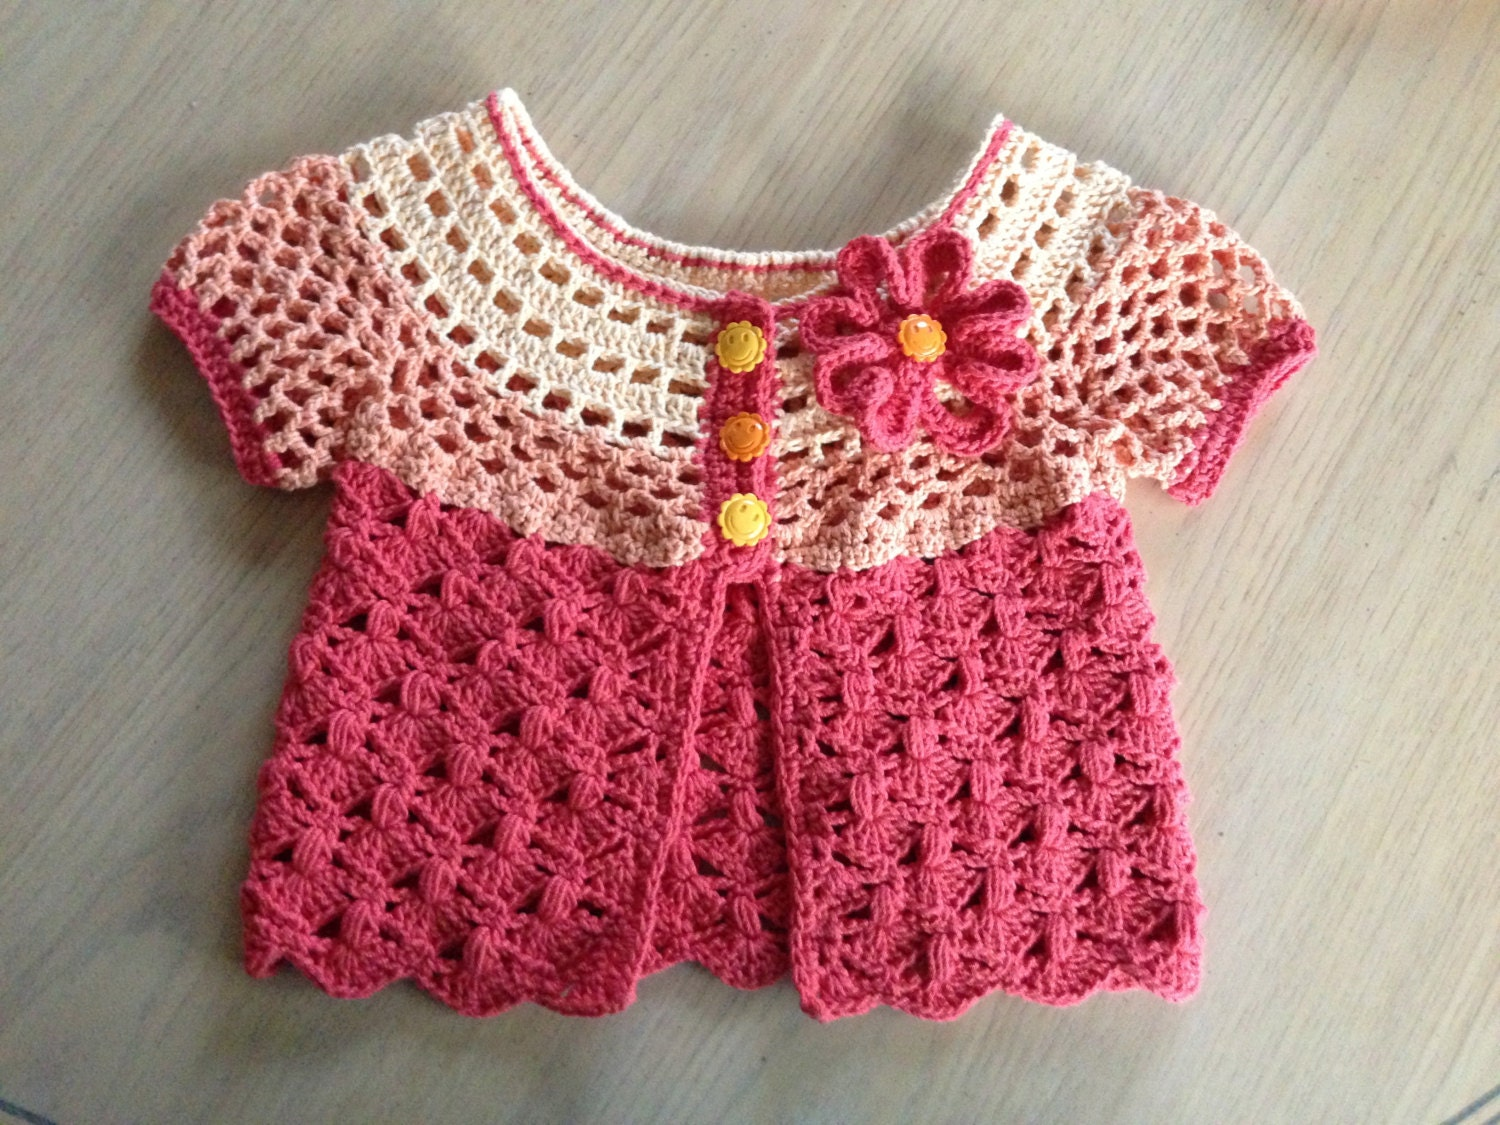 Crocheting Sweaters : Crochet Pattern for Baby Cardigan Sweater Sunburst Cardigan